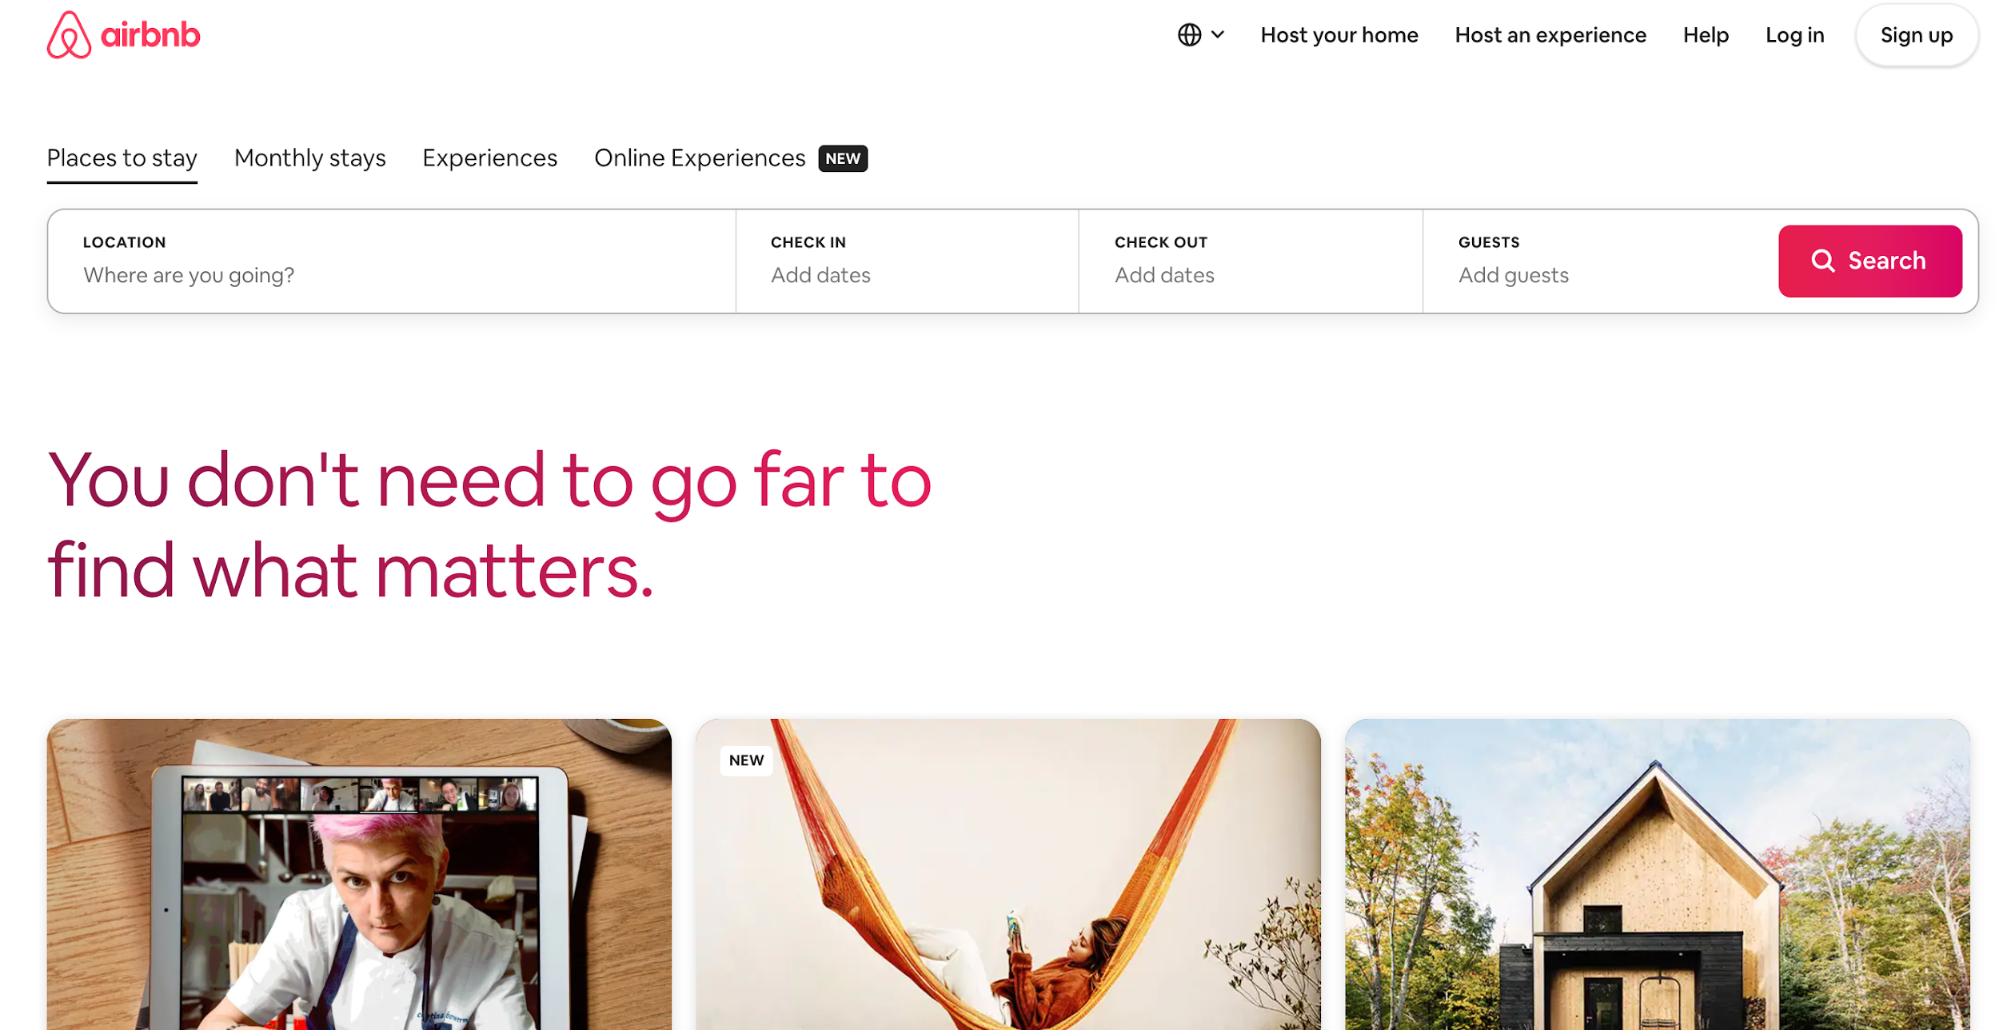 Airbnb's interface